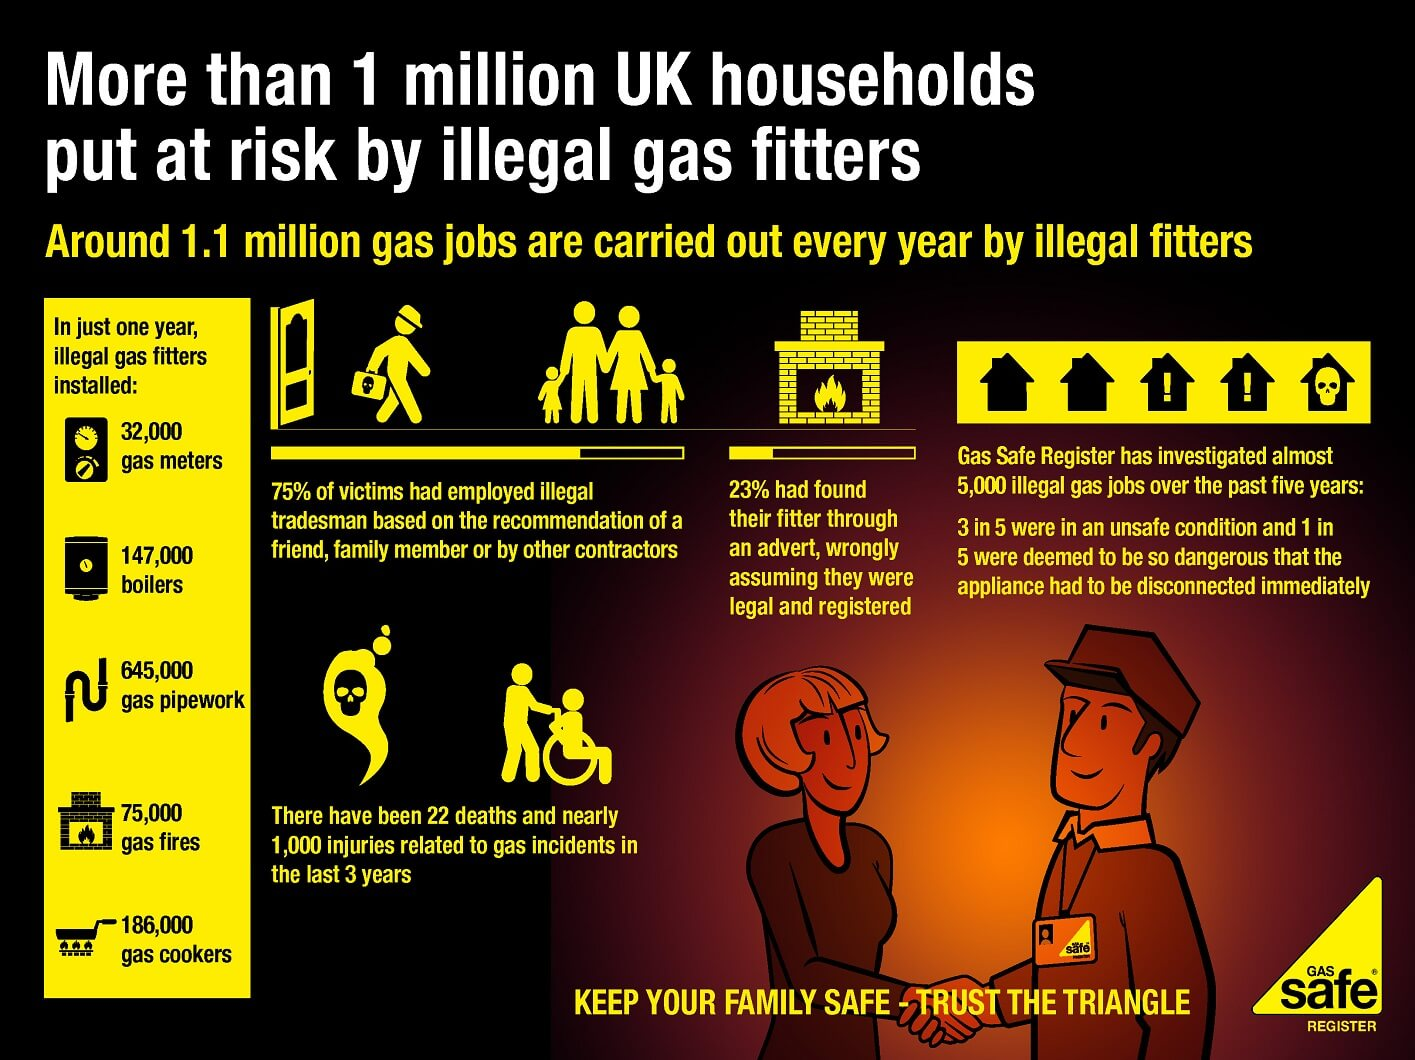 Central Heating Power Flush Medway - Reliable Plumbers & Heating Engineers Ltd are Gas Safe Registered-114518- We are Fighting for a Gas Safe Nation